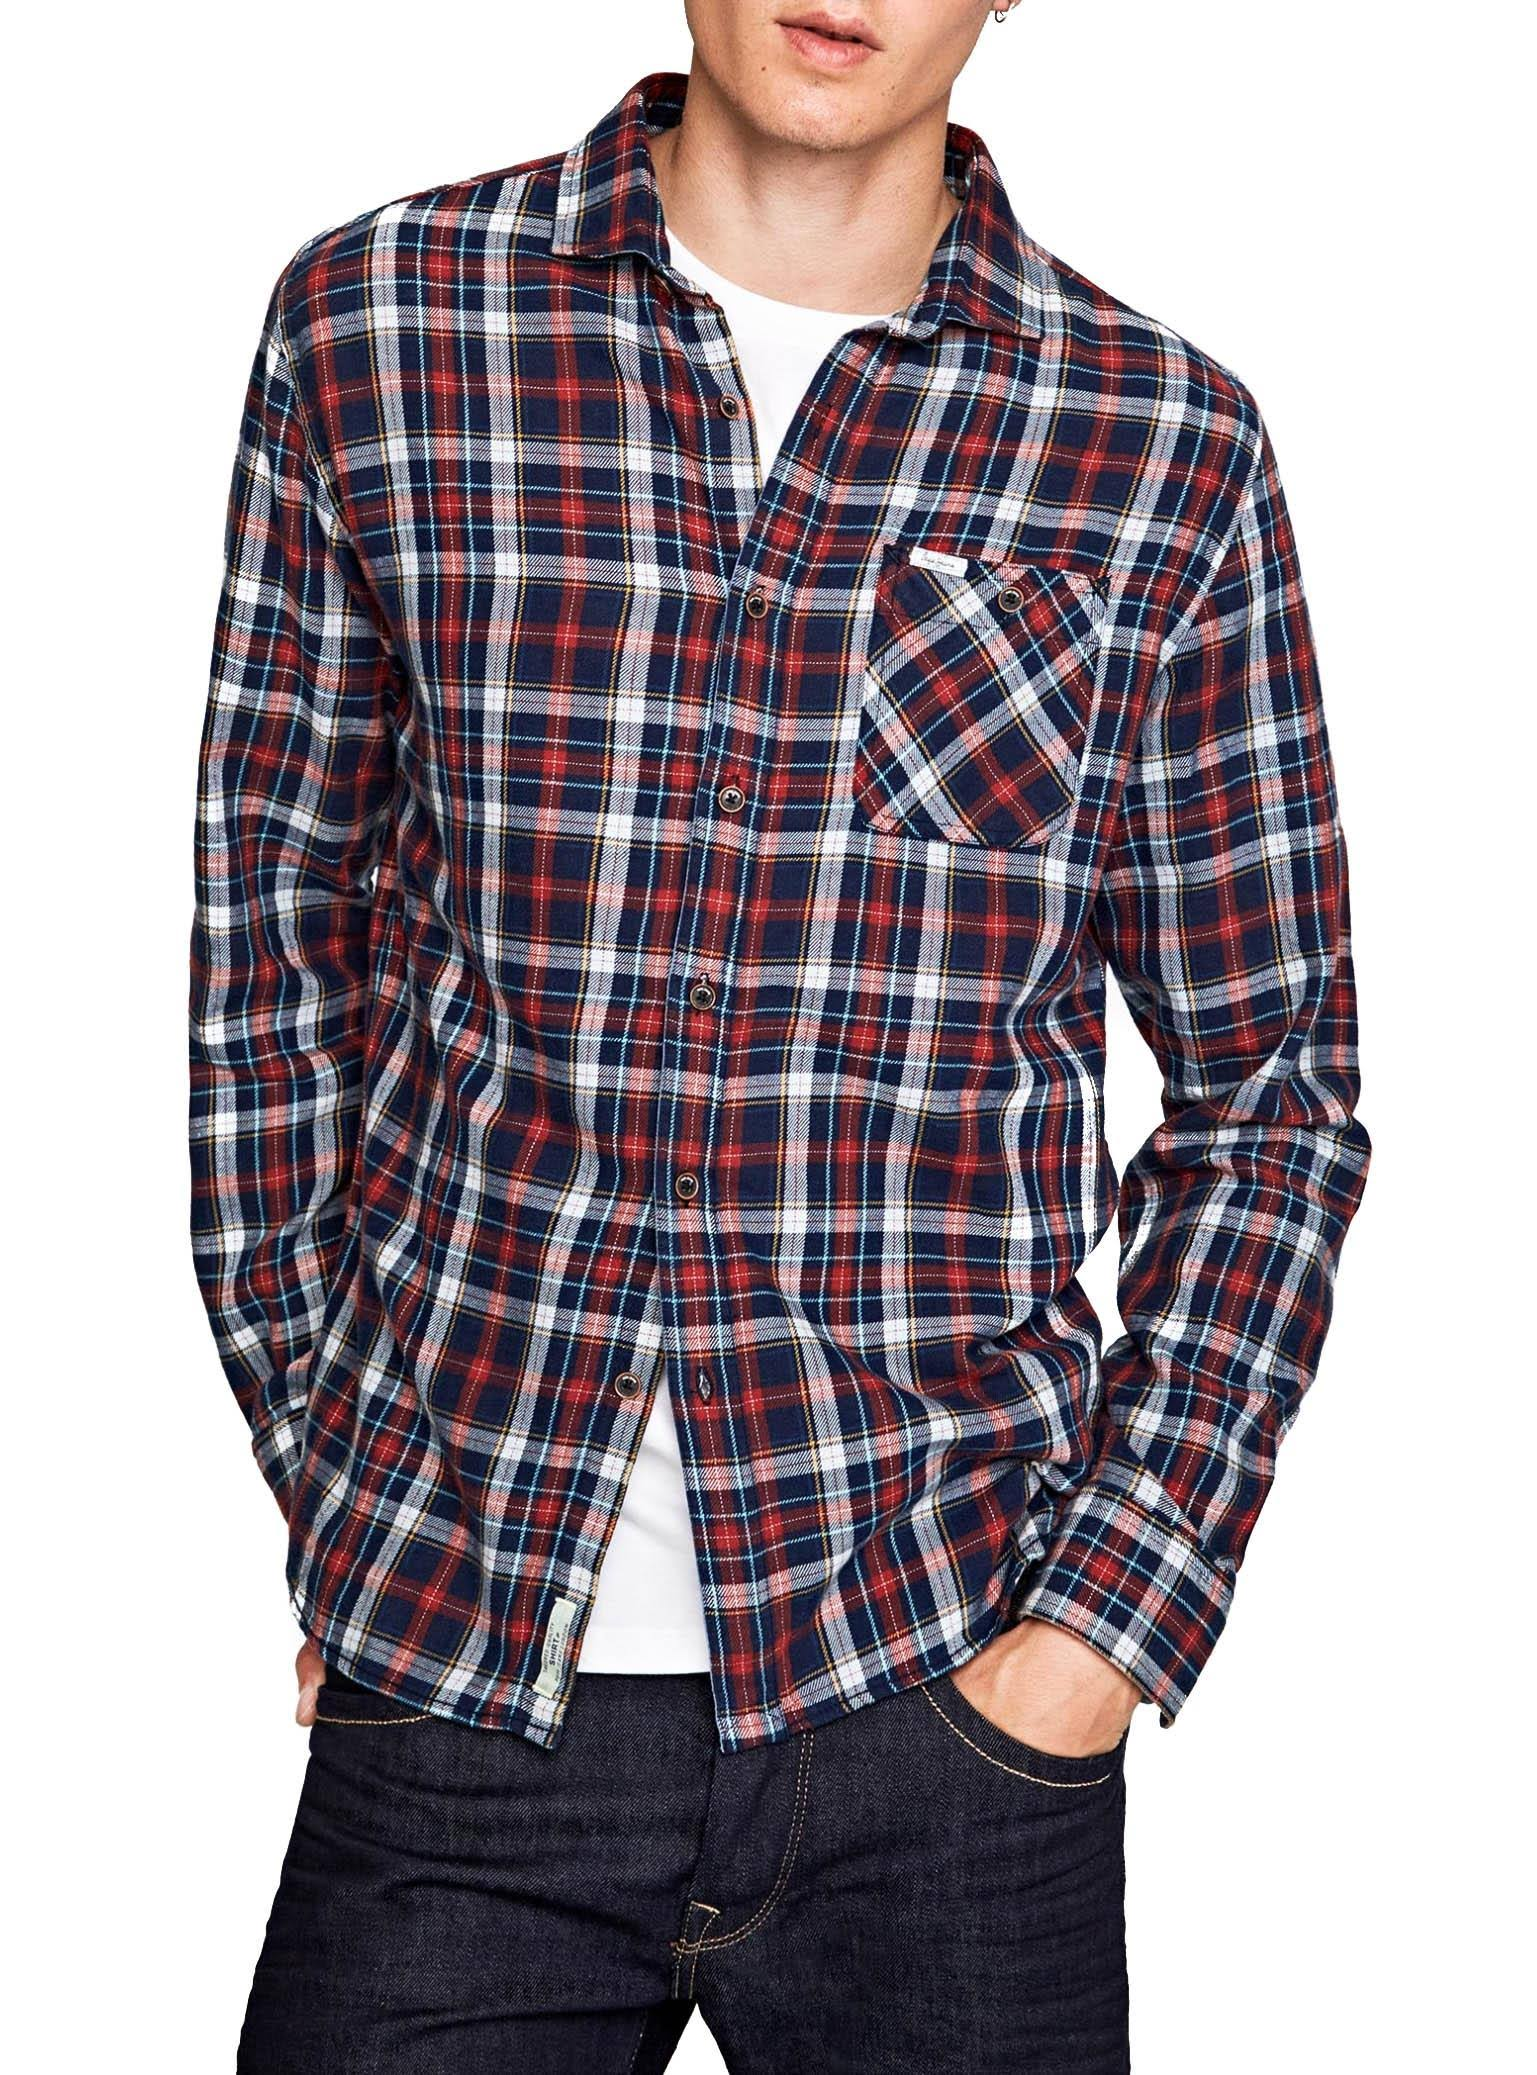 Hannover Jeans Hemden herren Hannover Pepe Pepe Jeans pa1xTqwC1